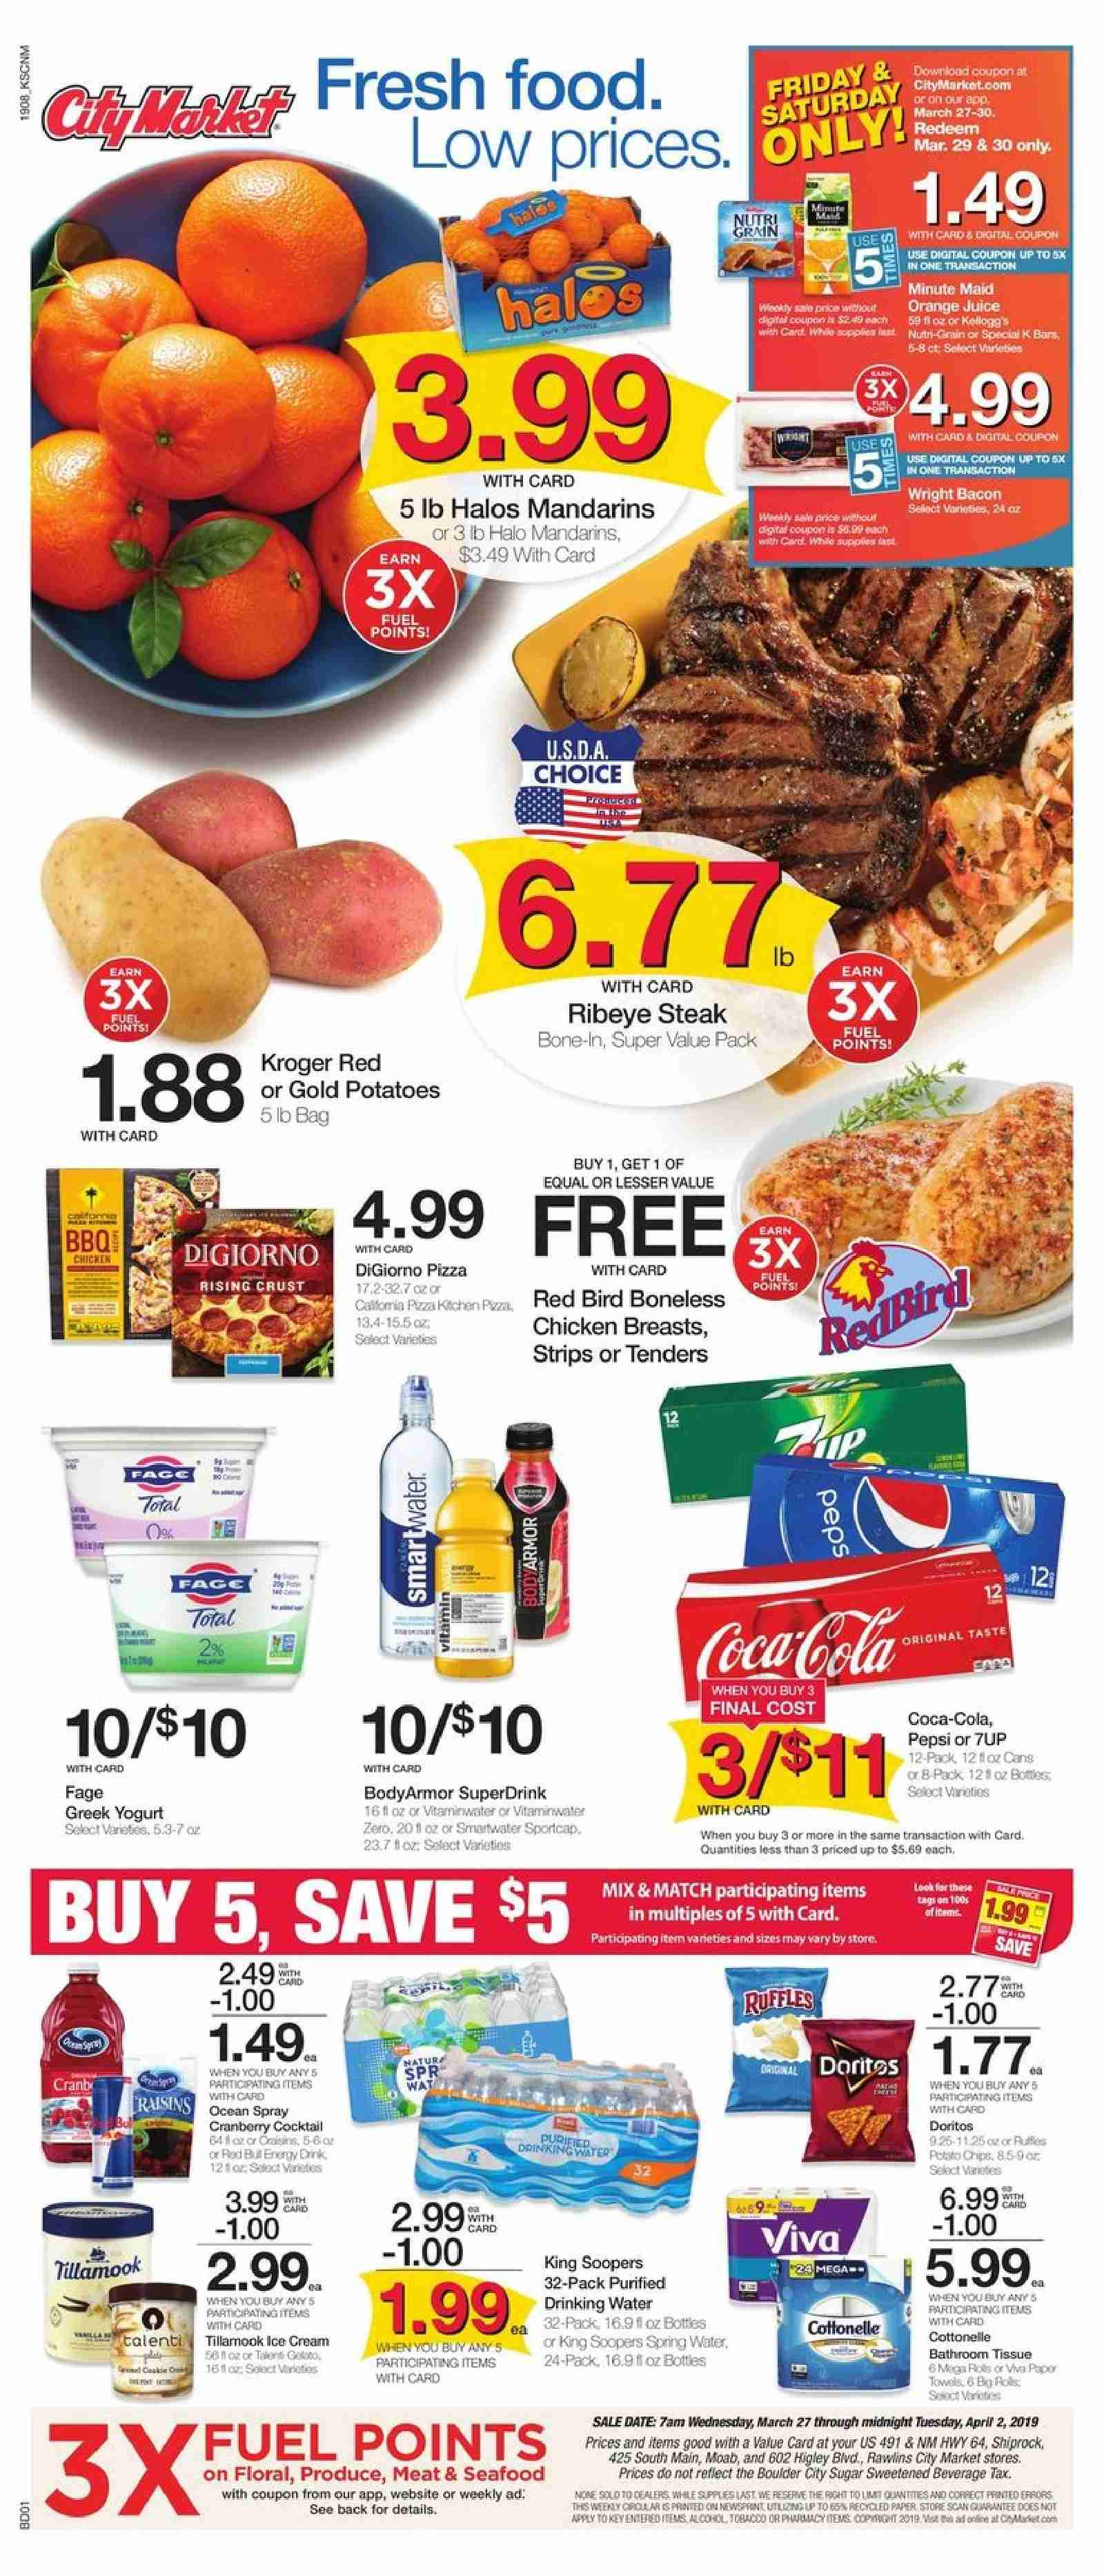 City Market Flyer  - 03.27.2019 - 04.02.2019. Page 1.